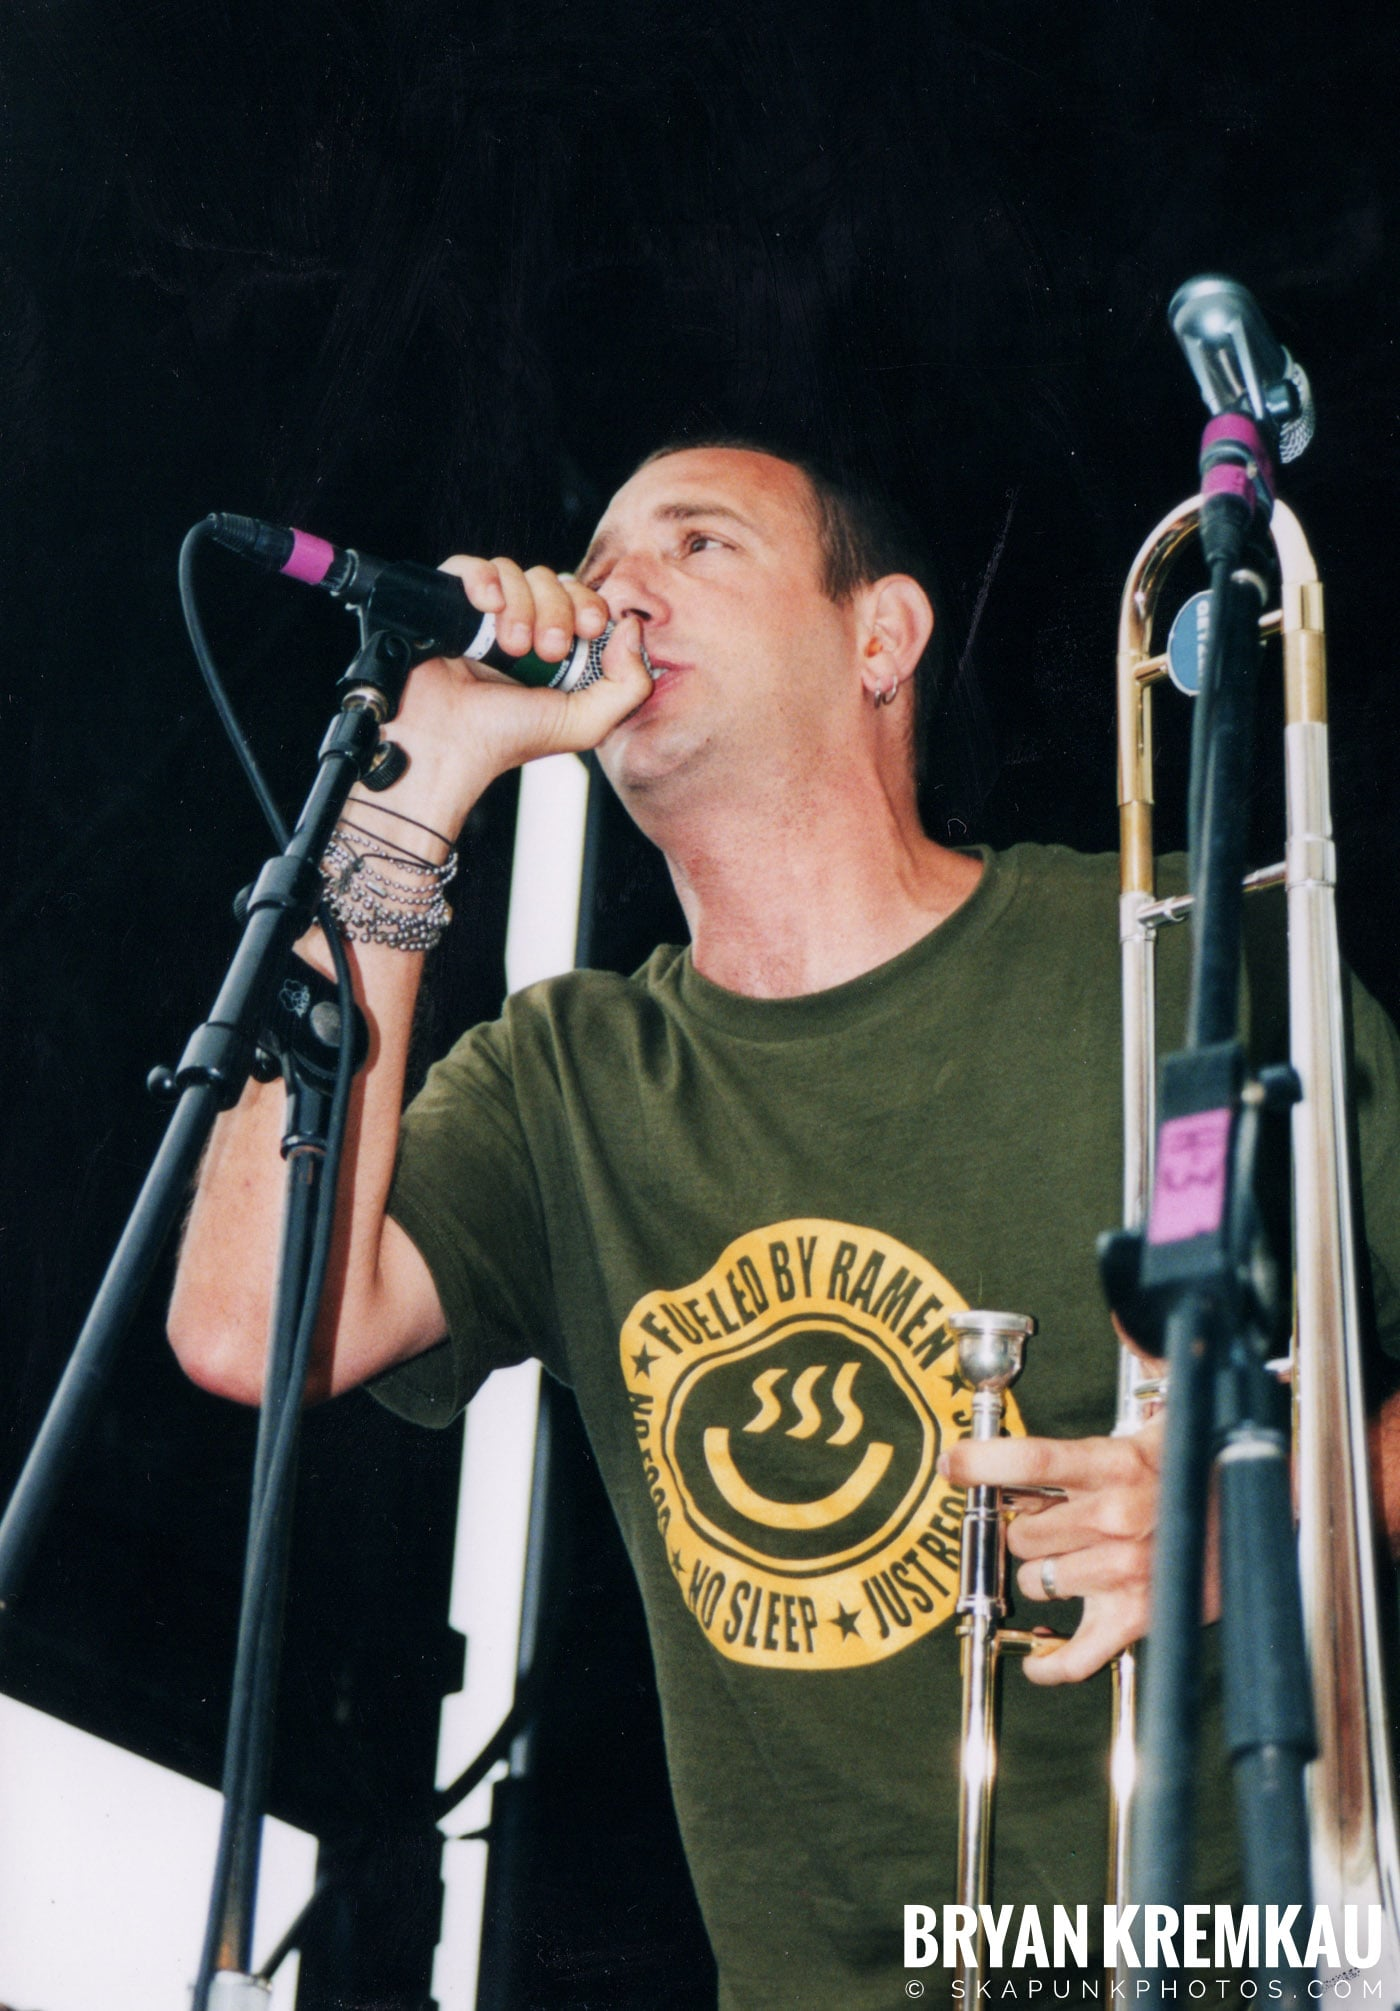 Less Than Jake @ Vans Warped Tour, Randall's Island, NYC - 8.4.01 (20)